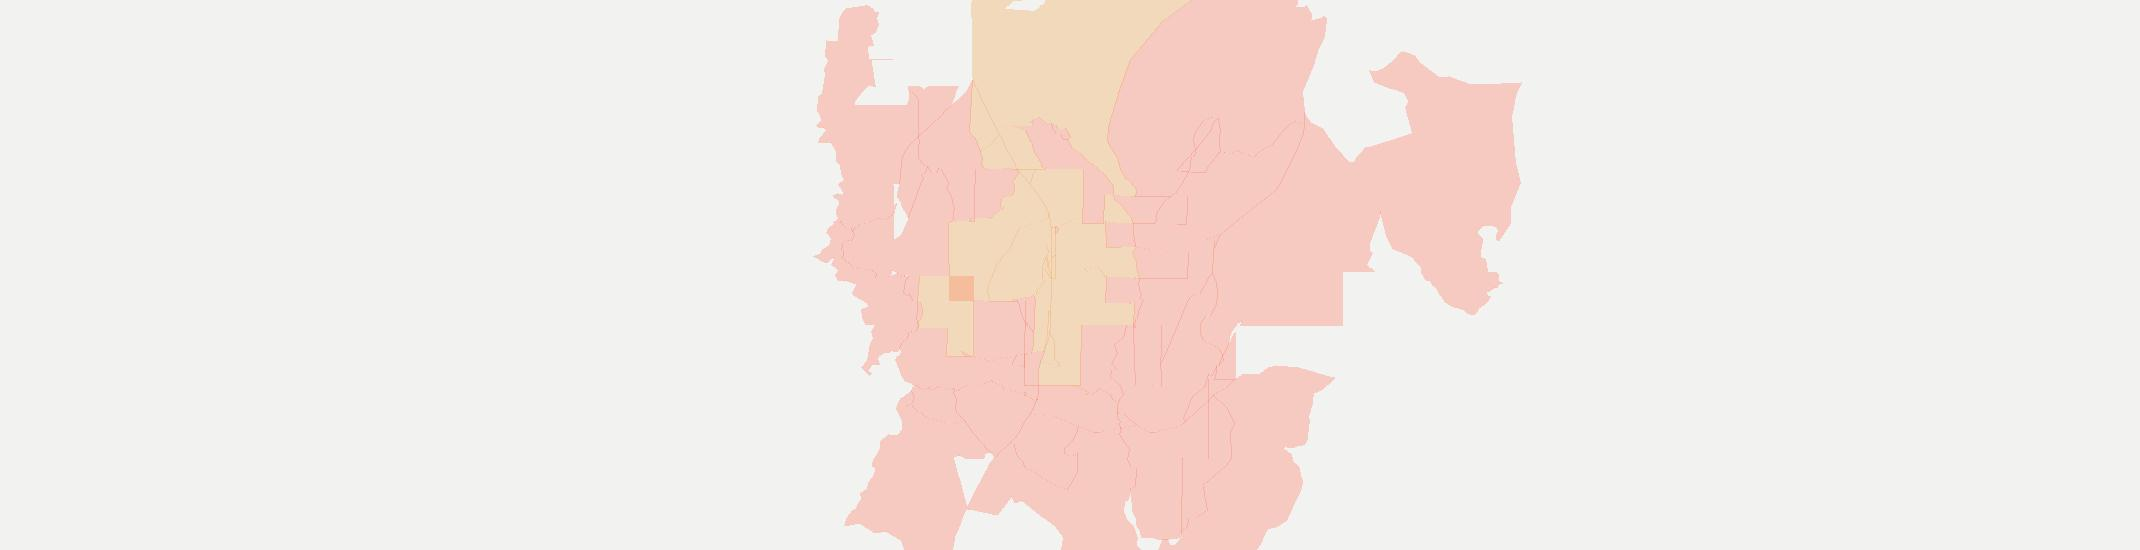 White Mesa Internet Competition Map. Click for interactive map.